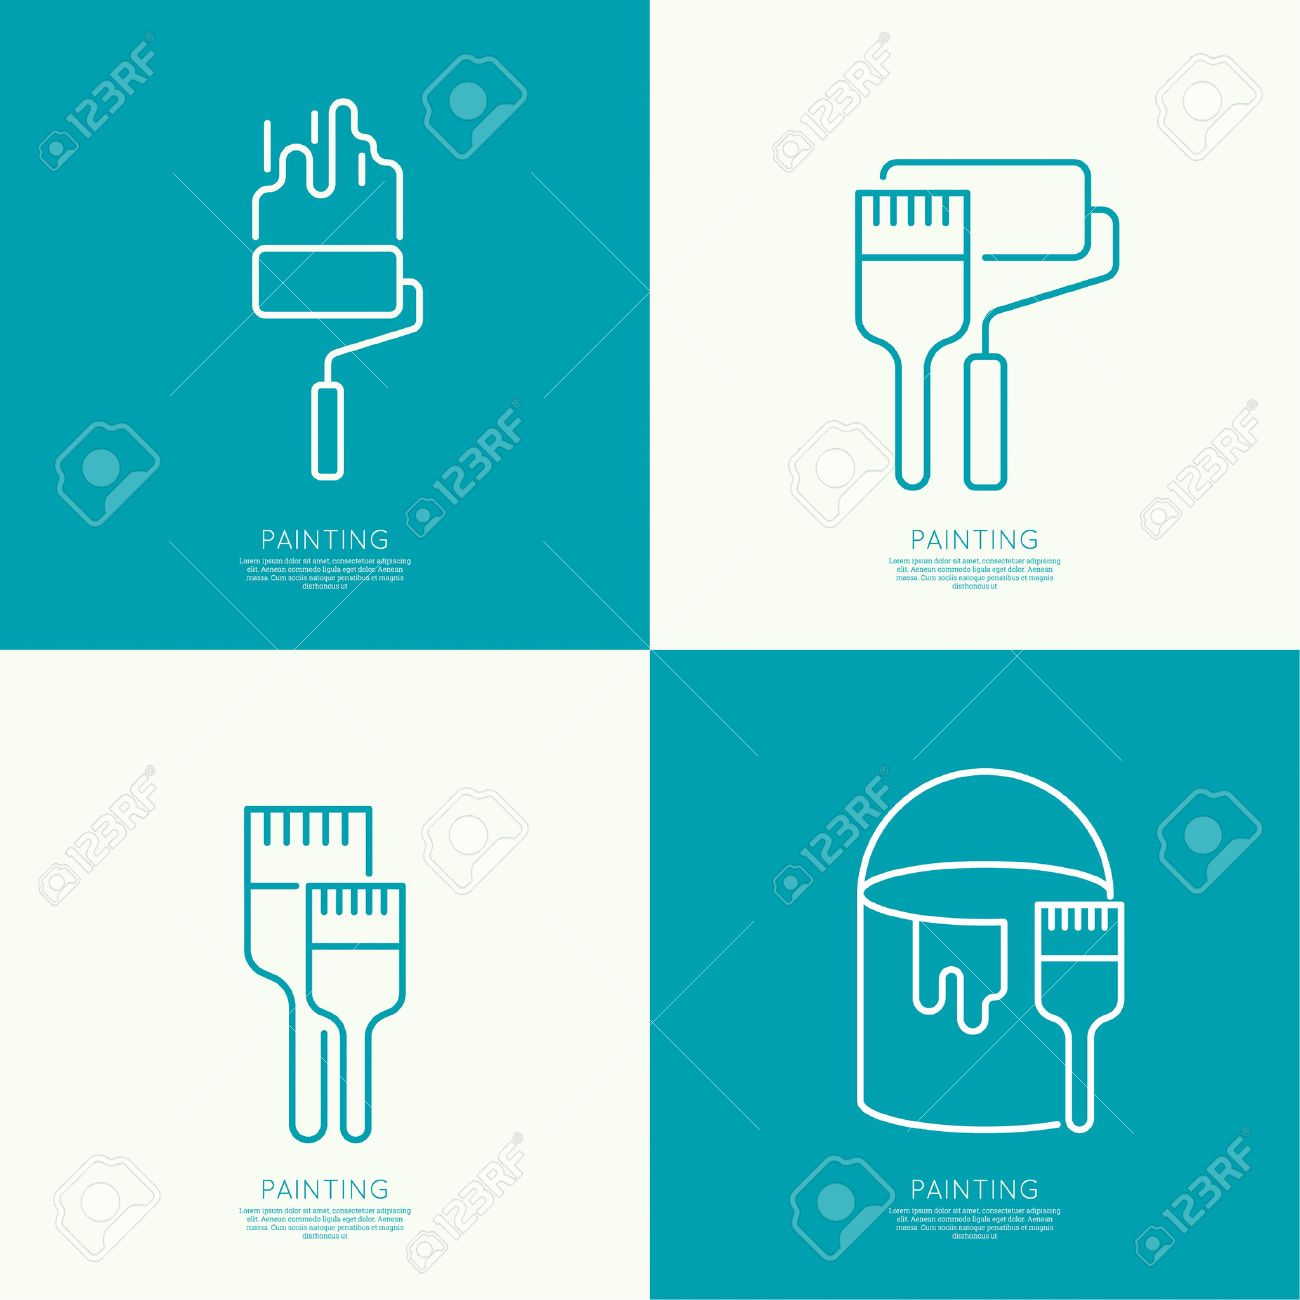 Icon set with brush, roller, paint cans. Painting and restoration. Painting work. Outline. minimal - 47783944